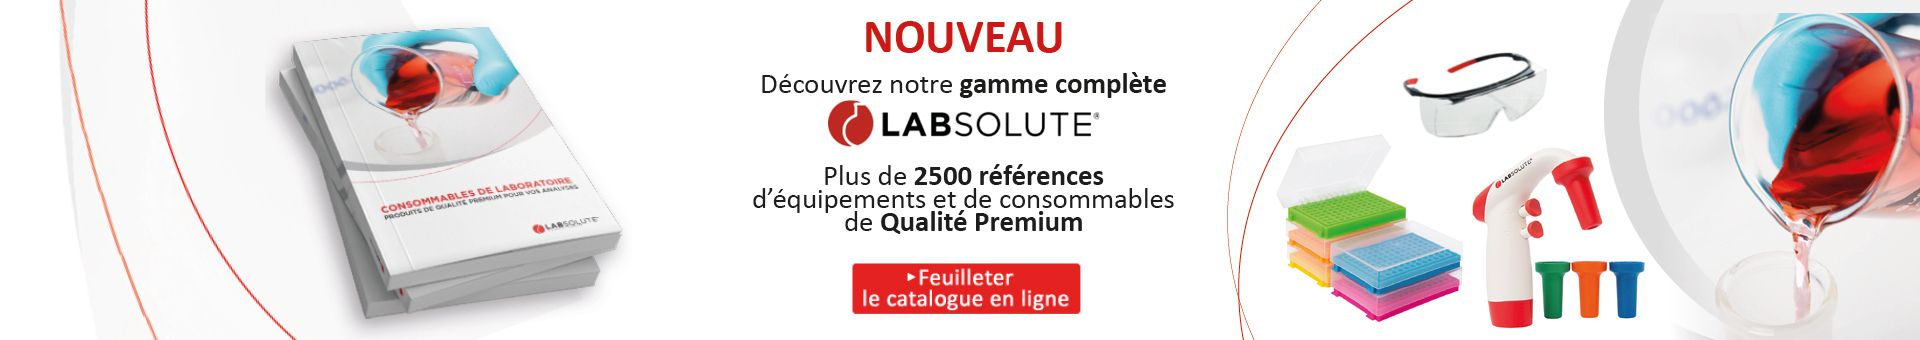 Labsolute